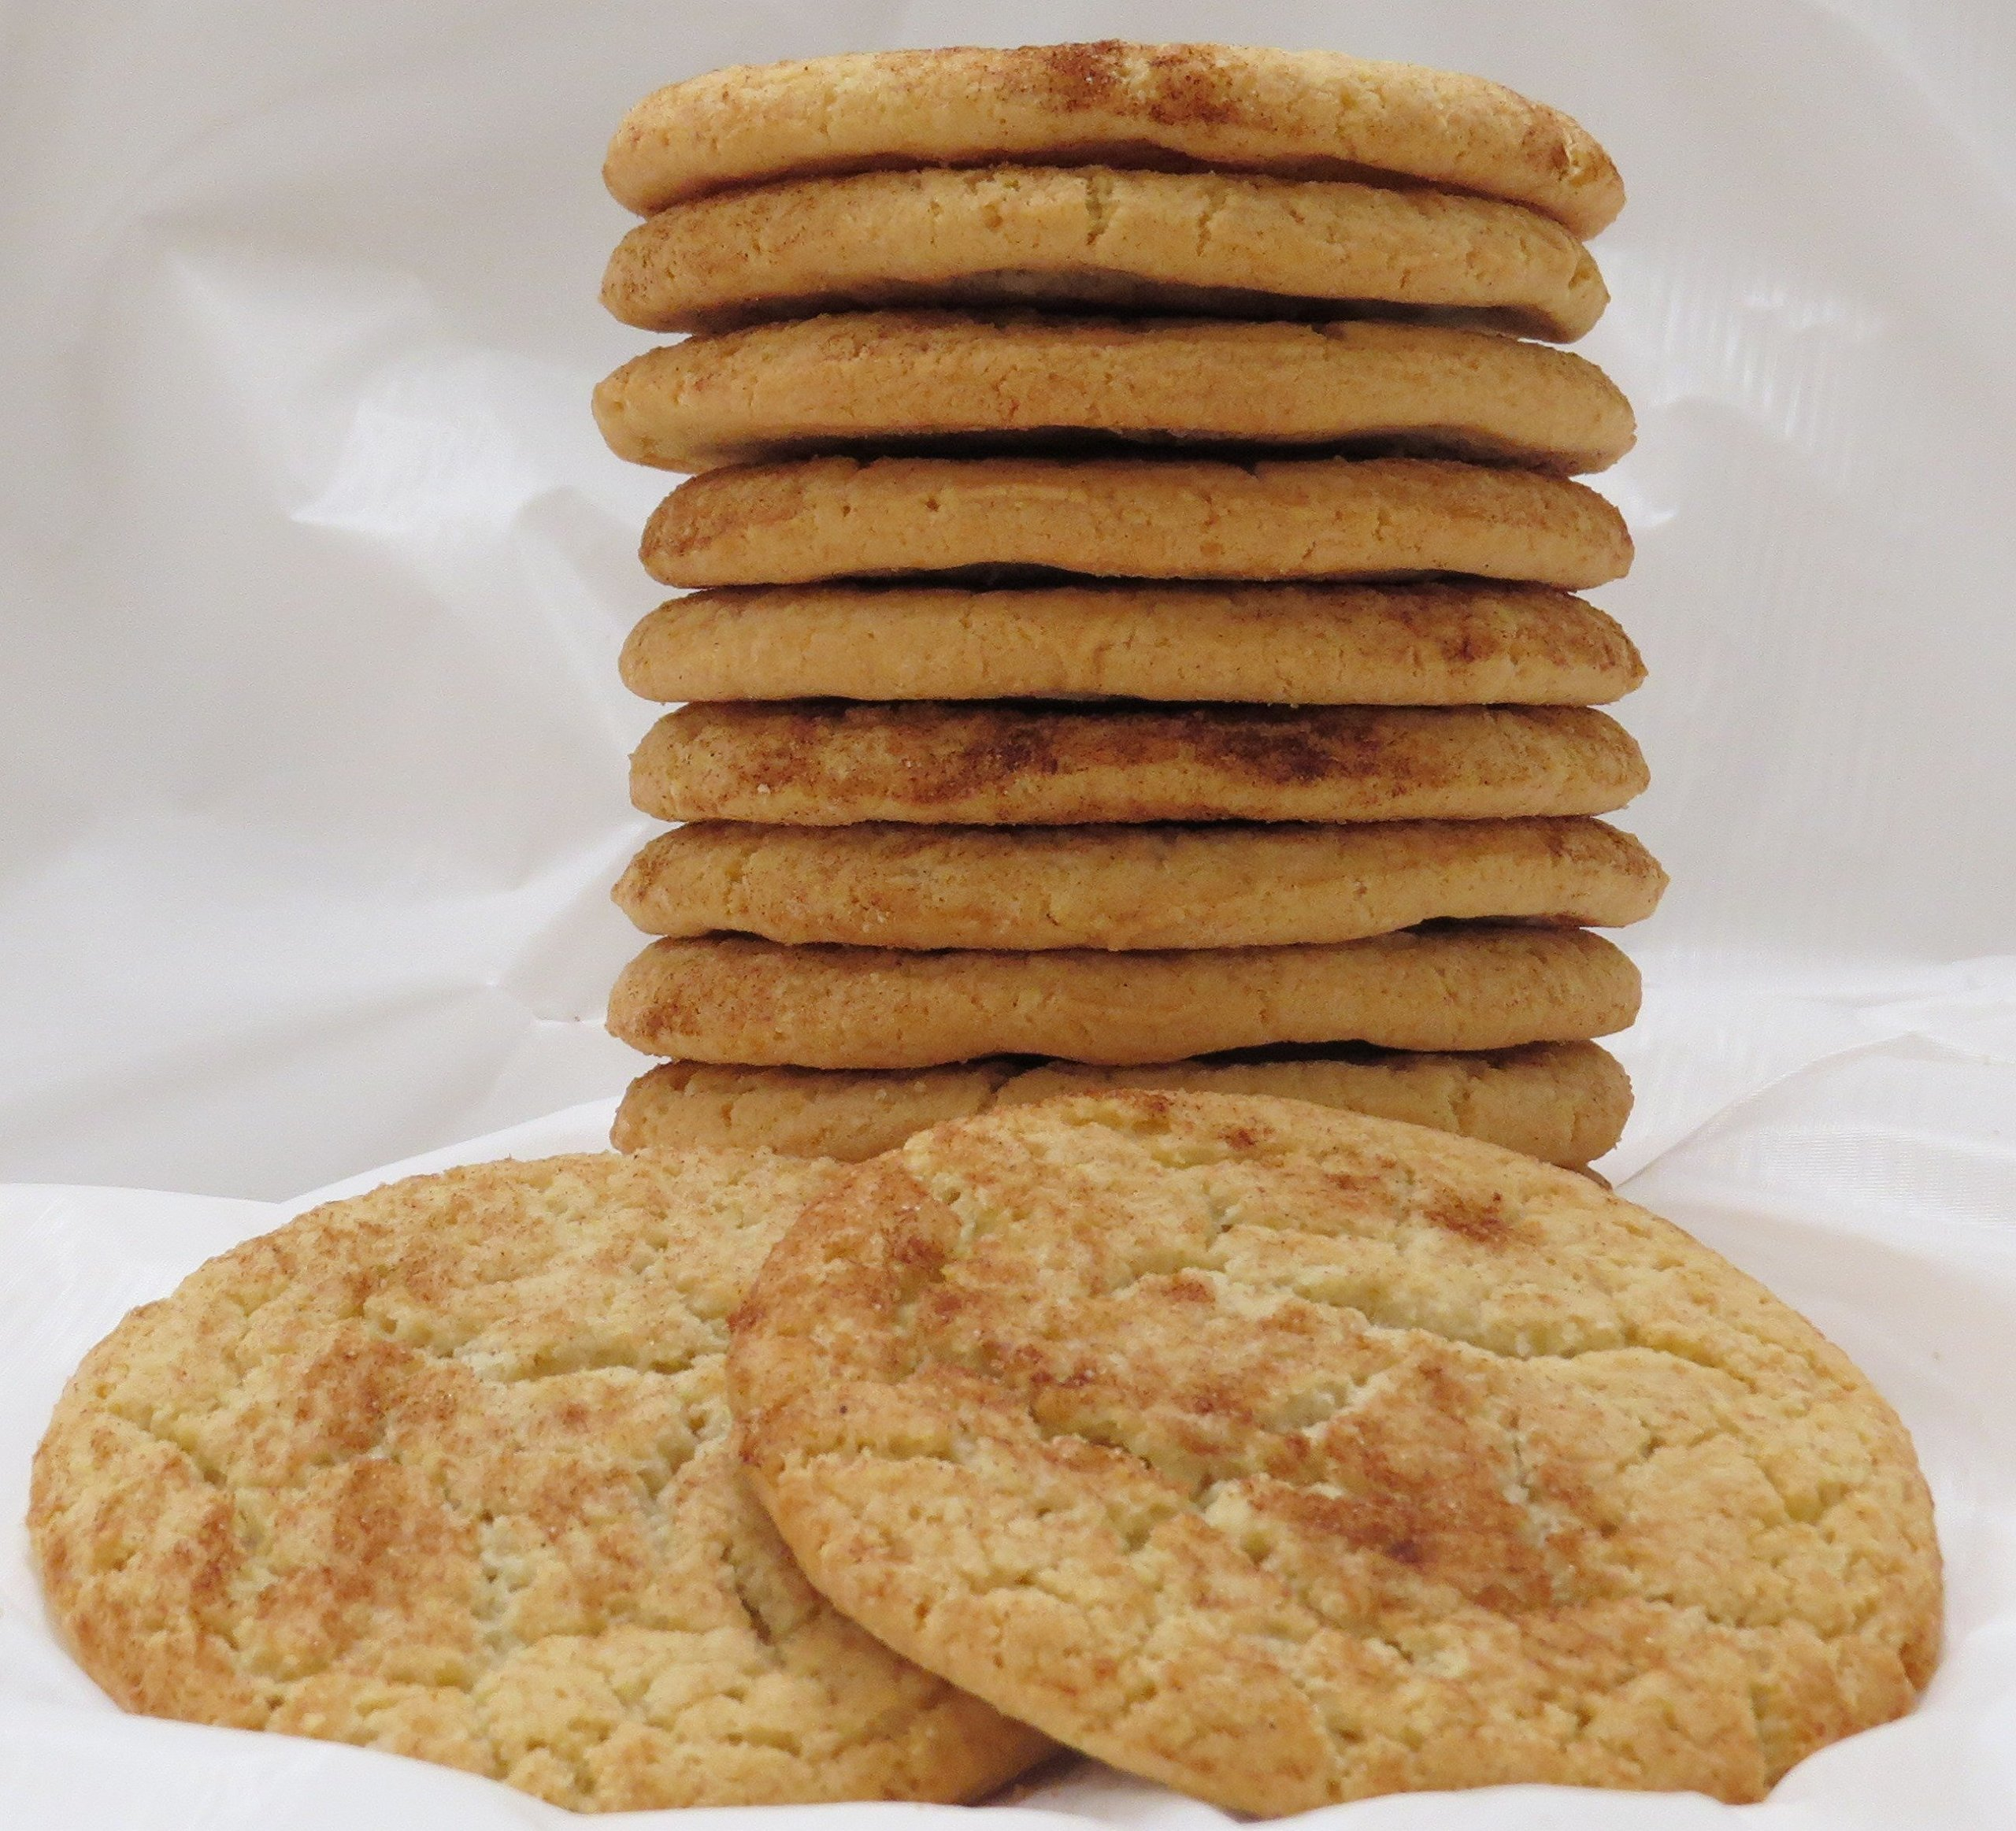 Homemade Snickerdoodle Cookies - 1 Dozen by Bread Box Bakery & Café - Shipshewana, Indiana